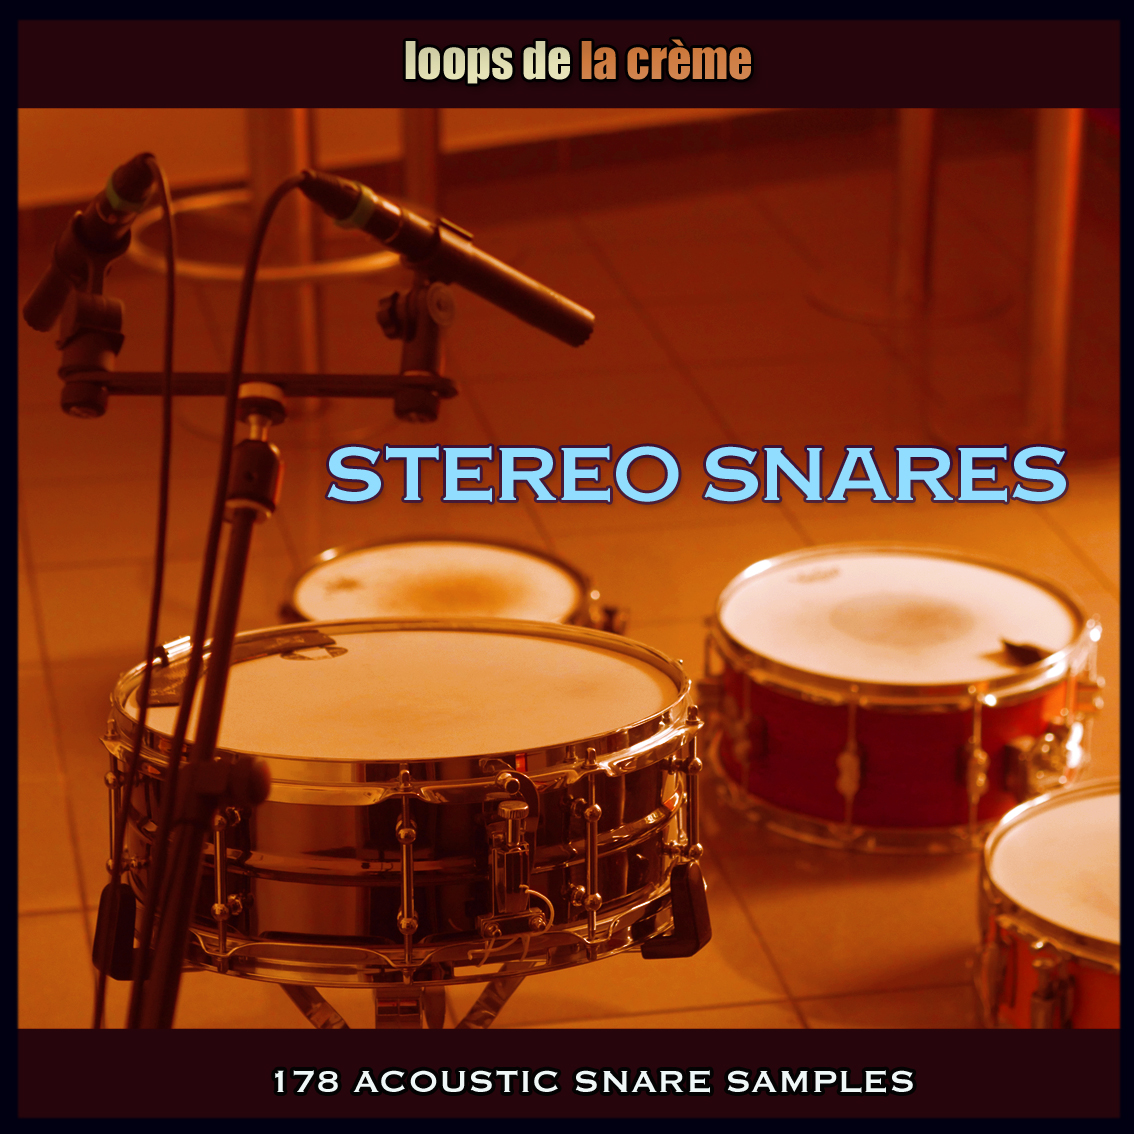 Natural-Stereo-Snares_2A.jpg